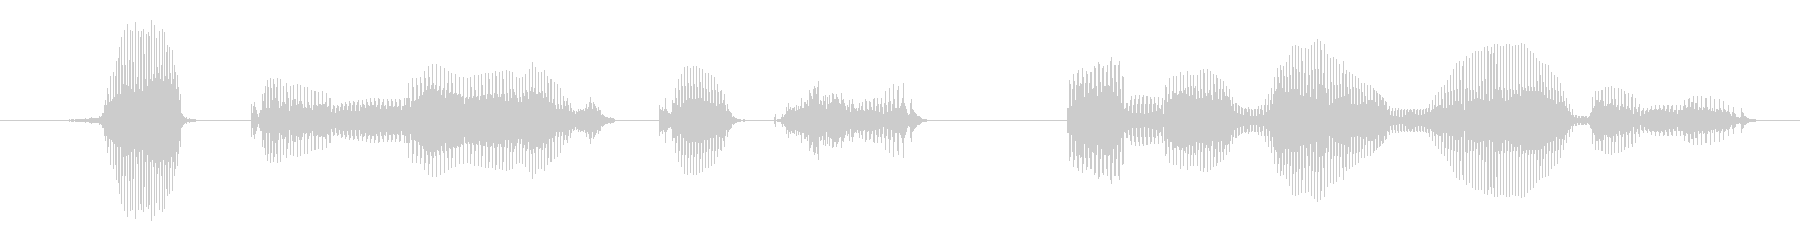 I have one more request (female)'s unreproduced waveform